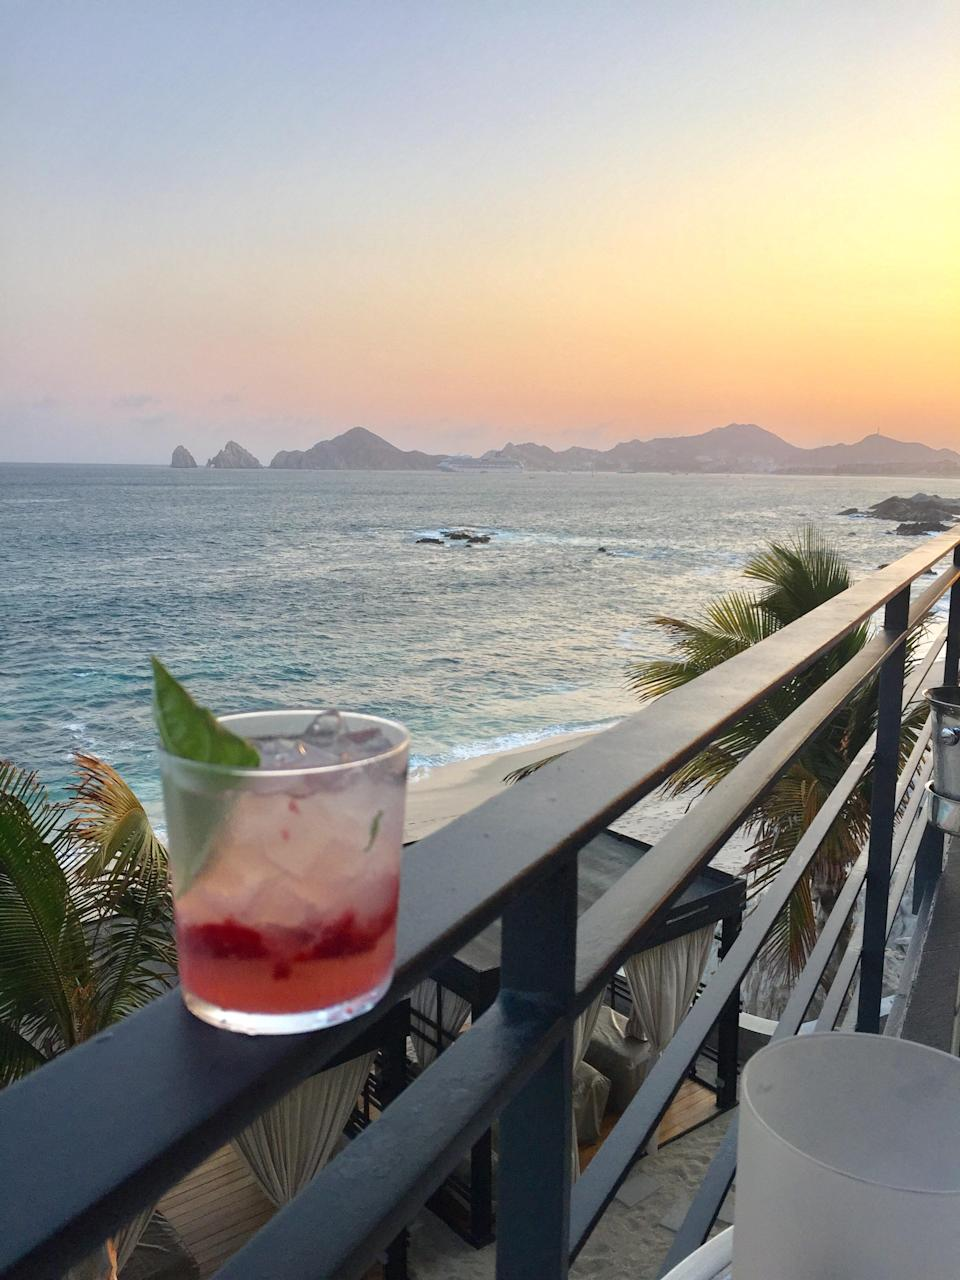 One of the best places to sip cocktails would have to be at The Cape hotel. Photo: Be